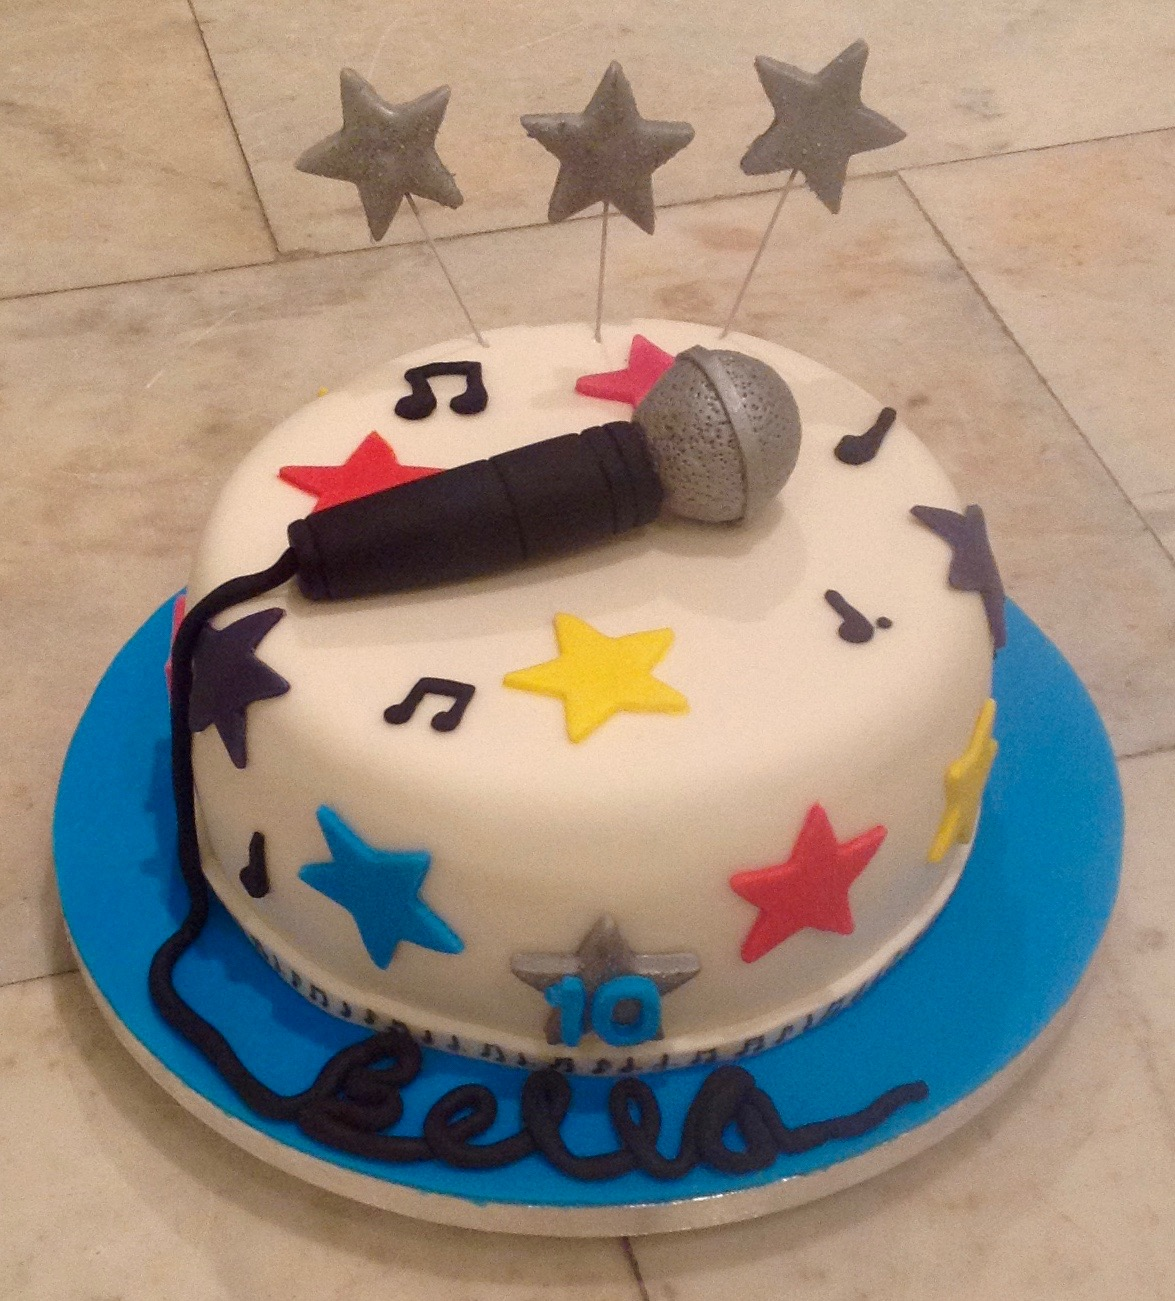 Microphone Singing Birthday Cake